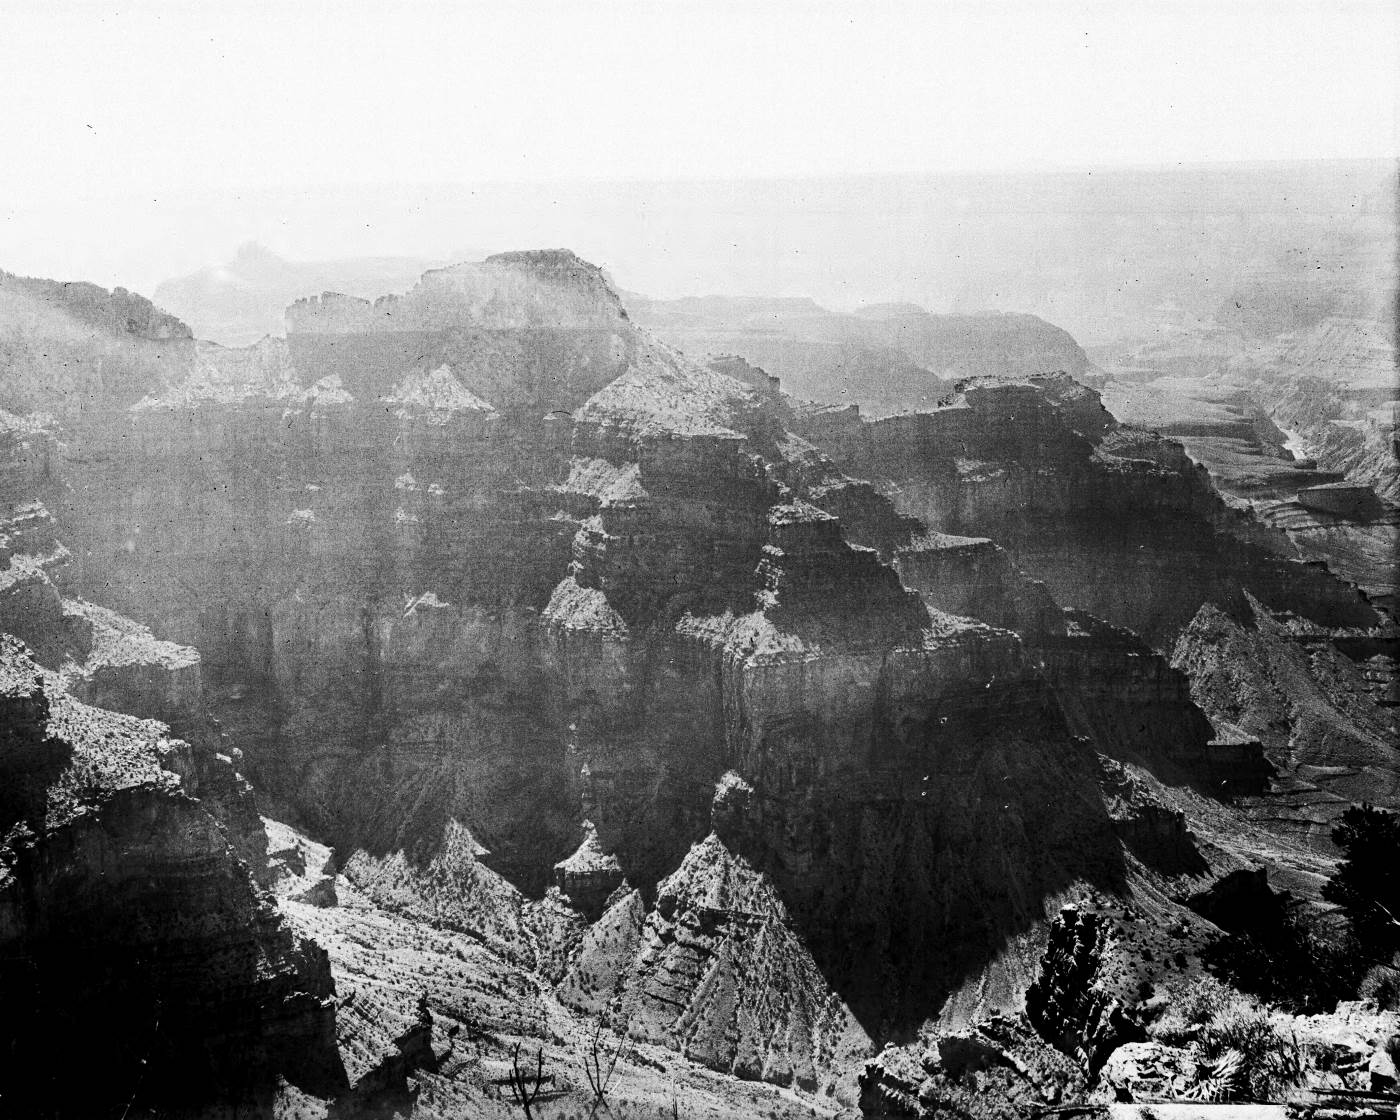 View from near Point Sublime on the north rim of the Grand Canyon, 1900-1930